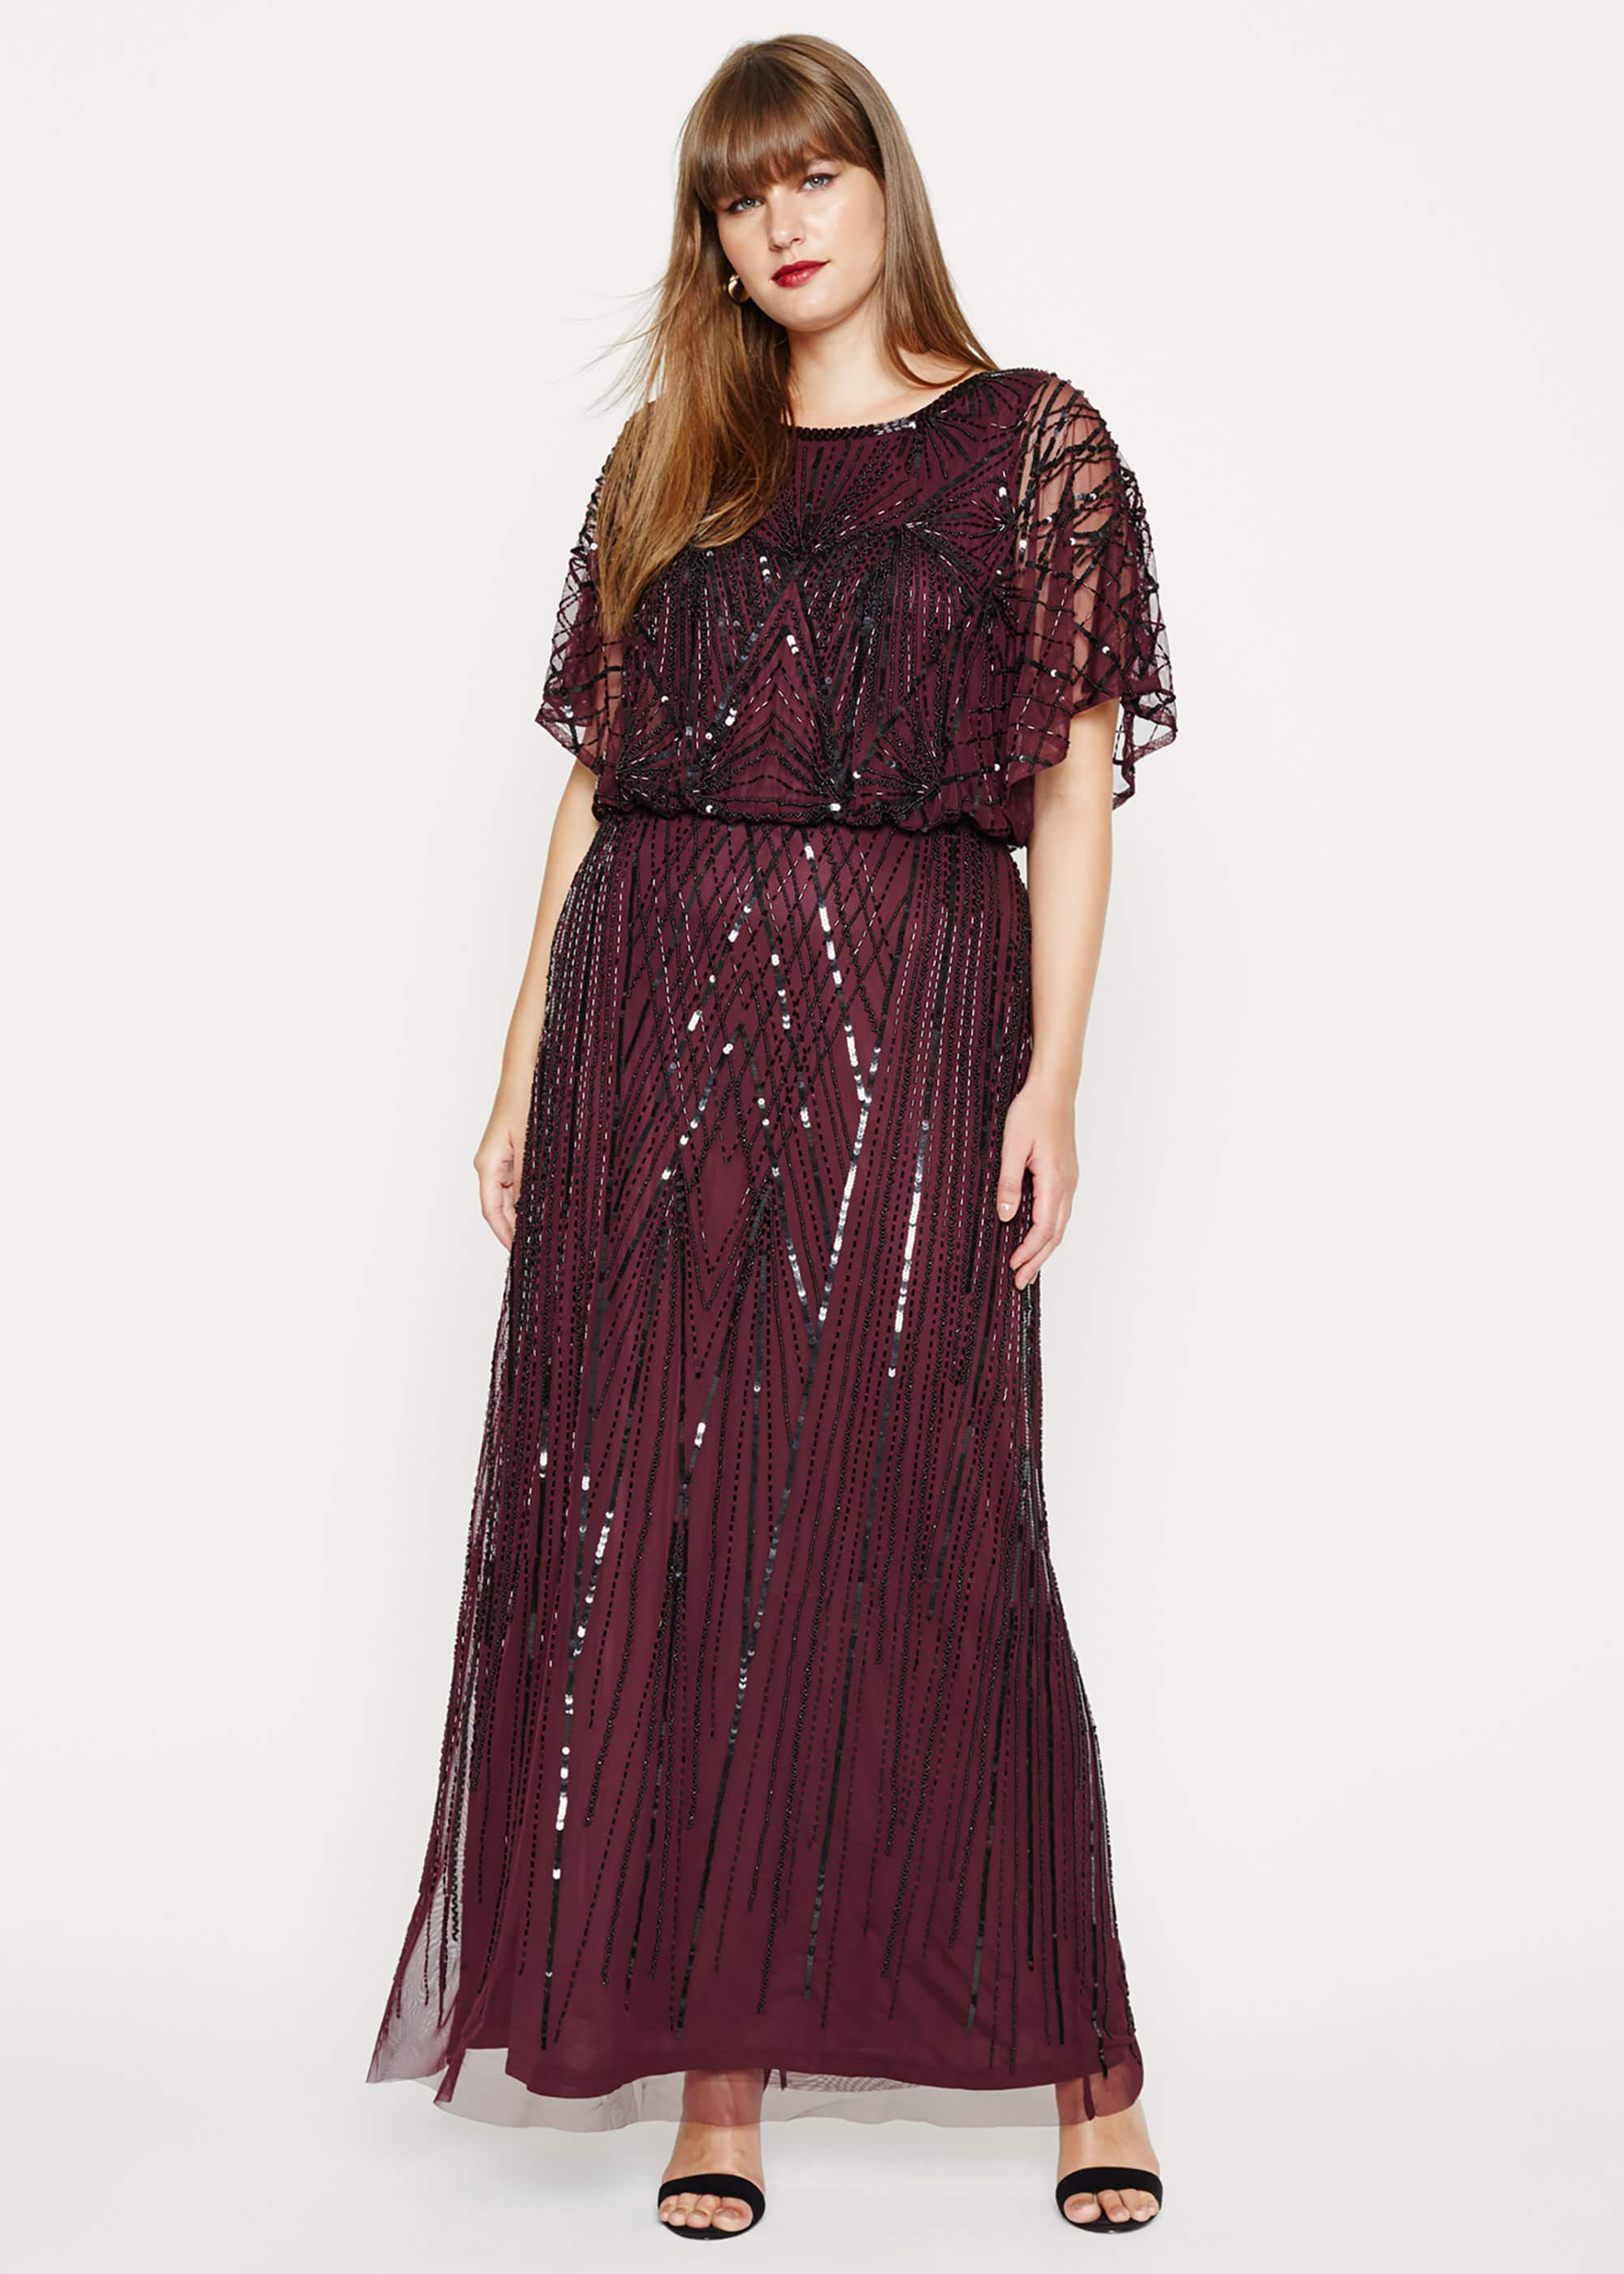 Studio 8 Phaedra Beaded Maxi Dress, Black, Maxi, Occasion Dress